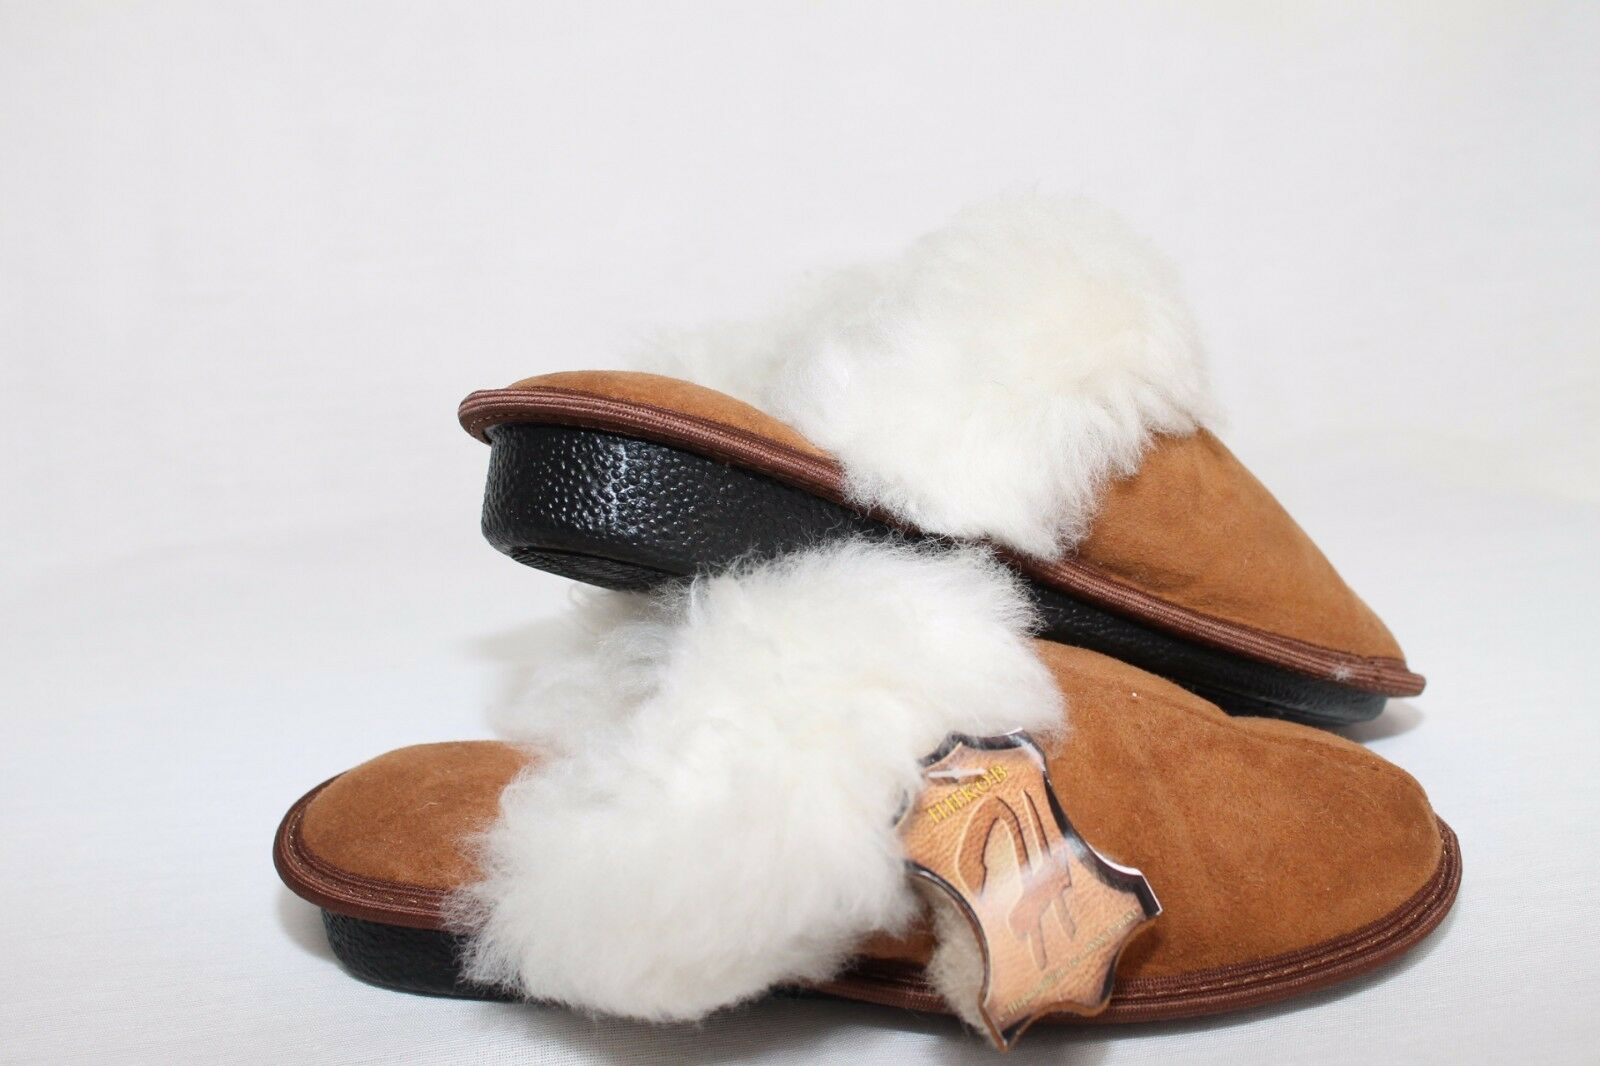 Women/Ladies Genuine Sheepskin Slippers/Mules 100% Real Fur. Height heel